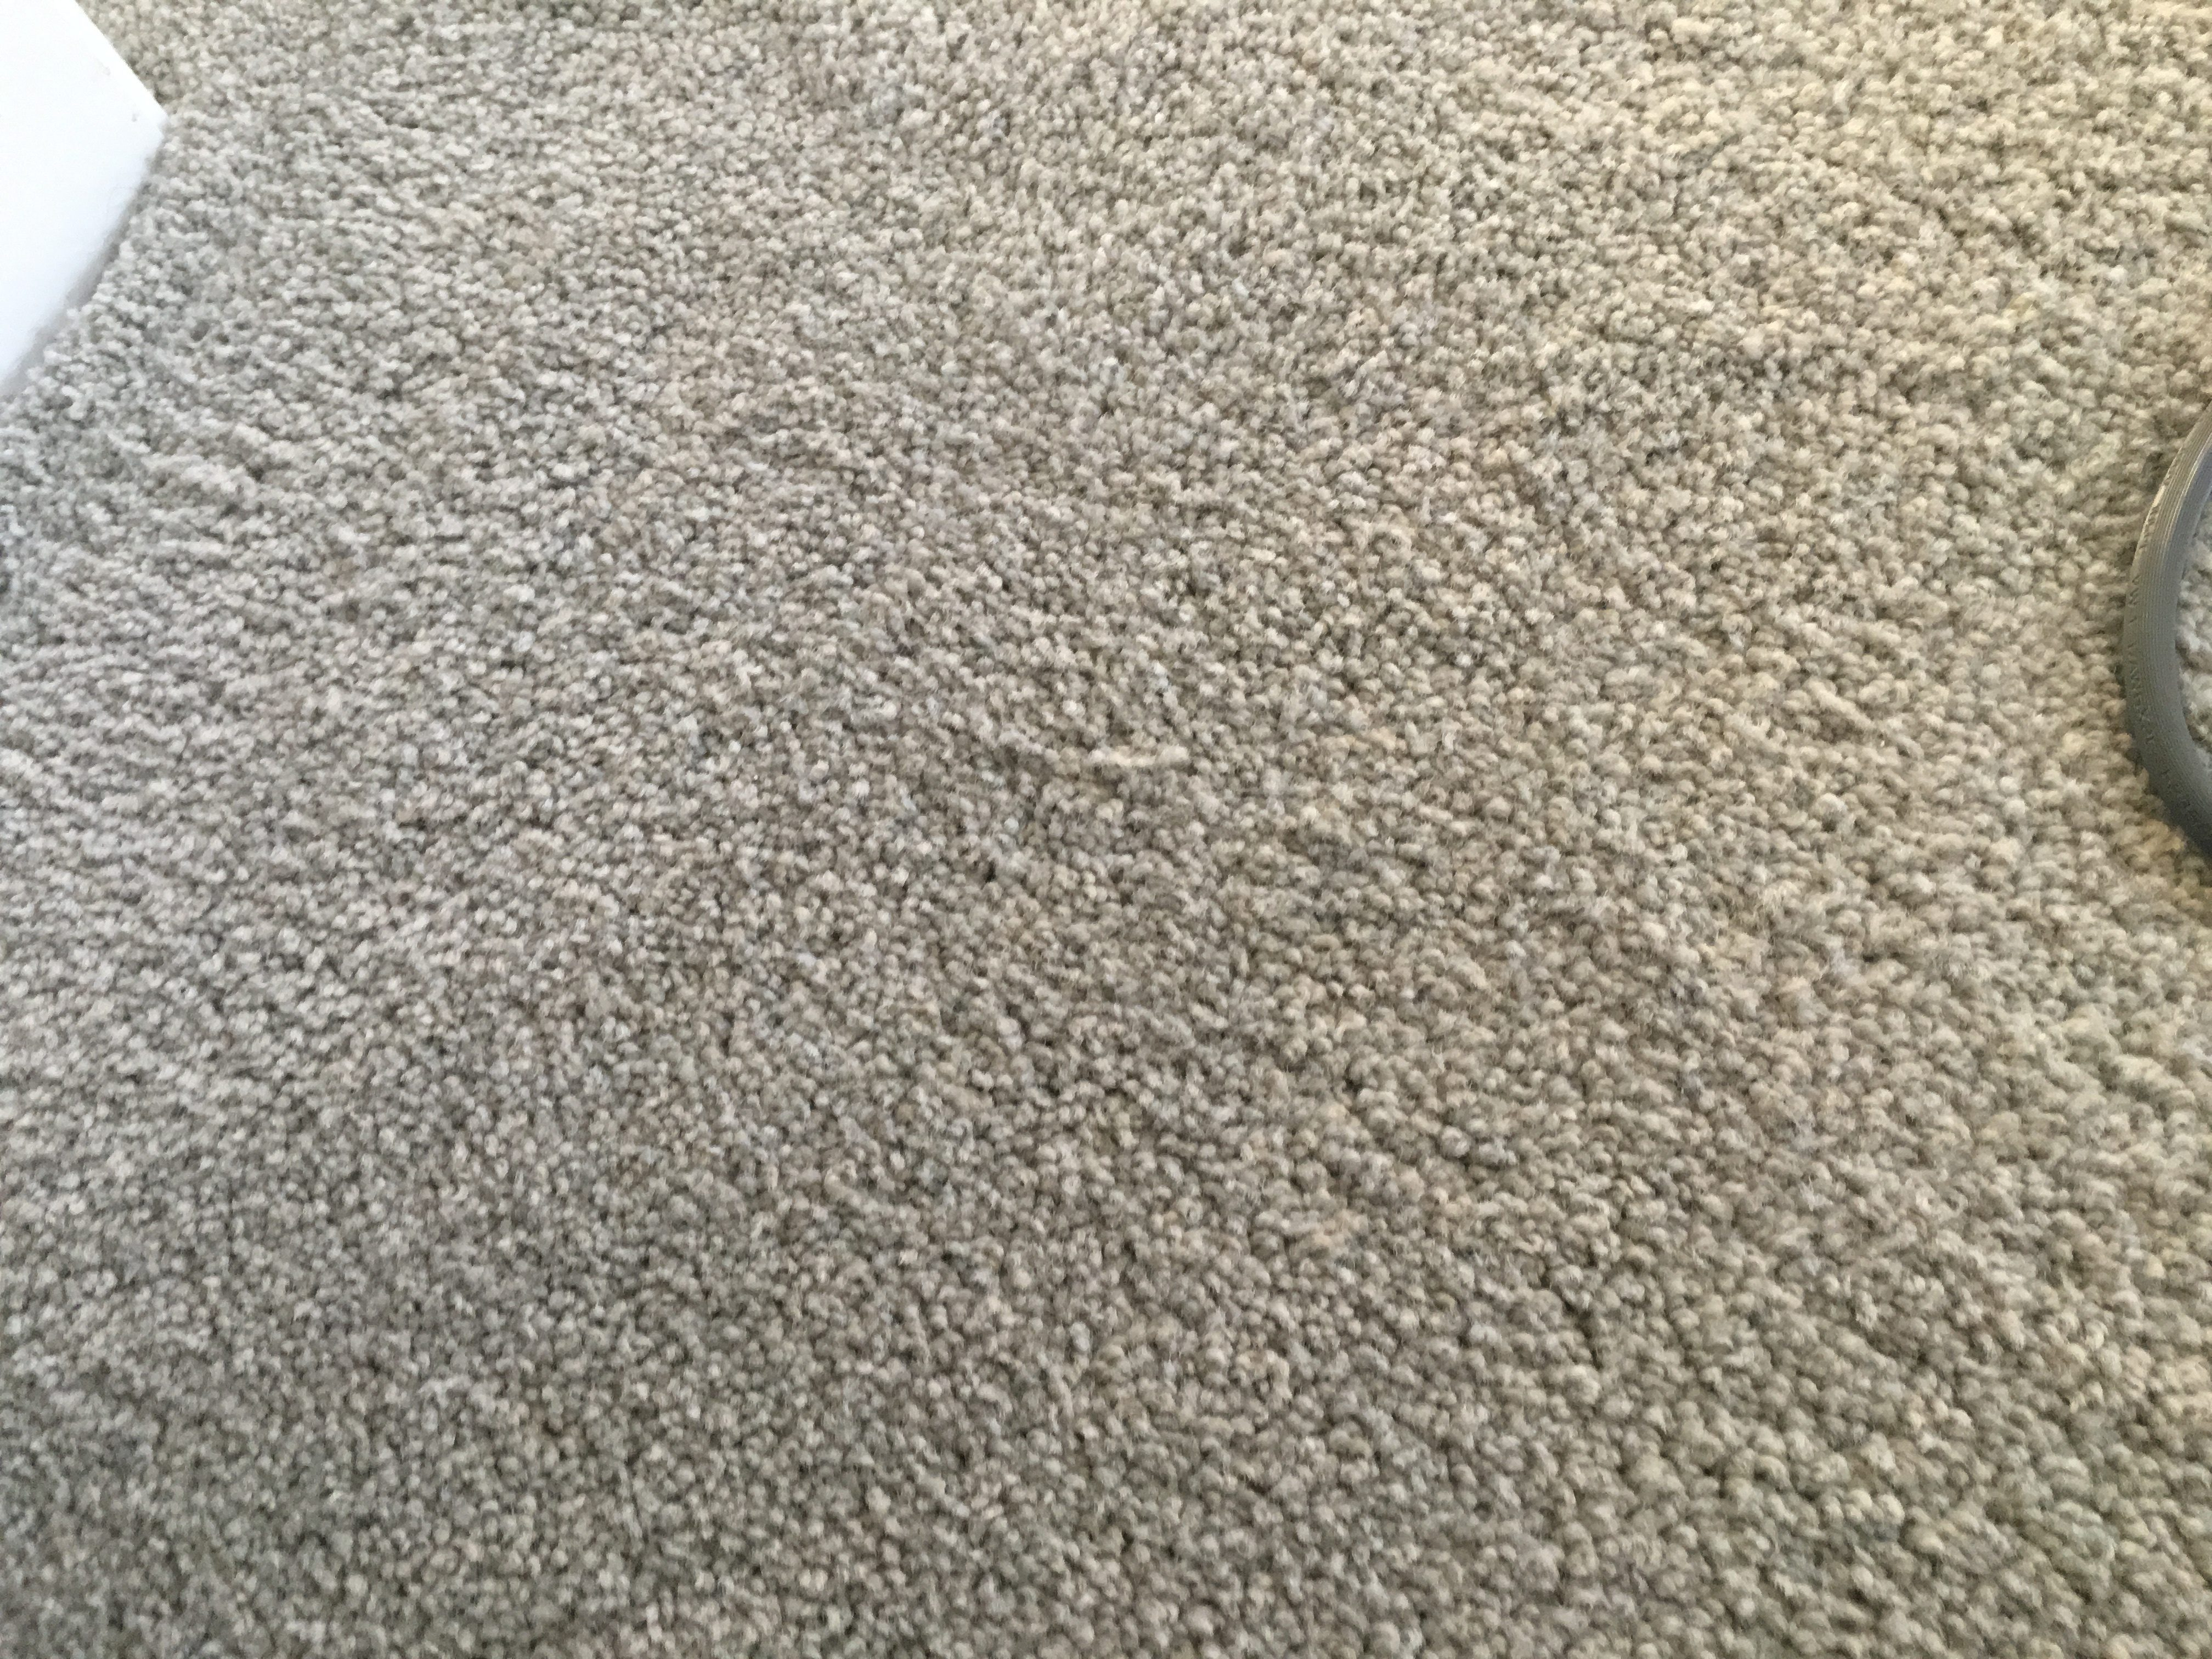 to be top quality carpet stainmaster petprotect baxter iii from - Outdoor Carpet Lowes